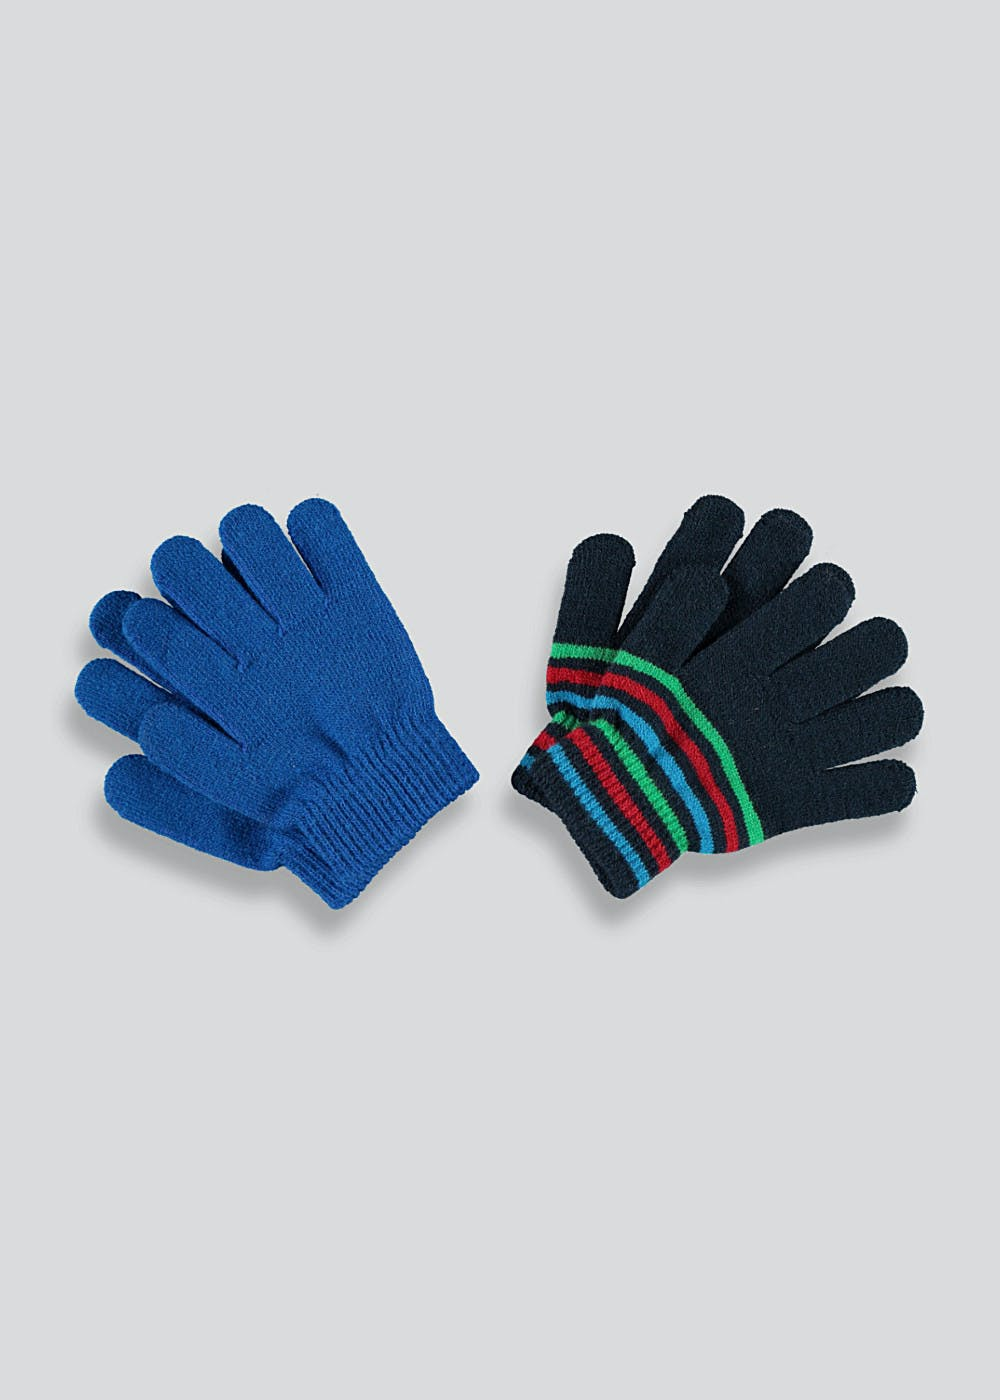 Kids 2 Pack Magic Gloves (One Size) – Multi